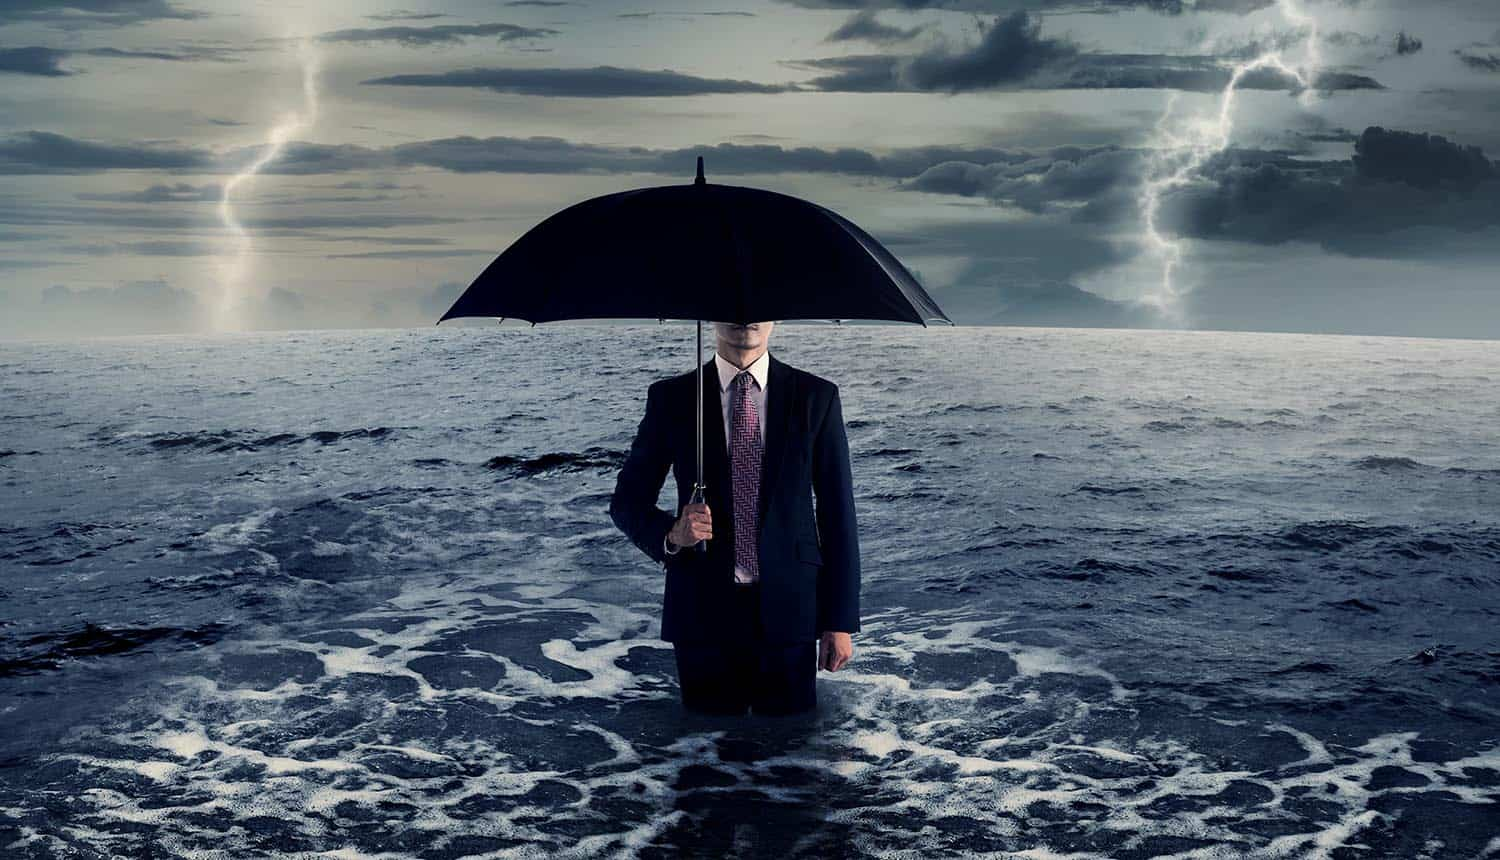 Business man standing on the sea in the middle of storm showing cyber insurance may not cover cyber war